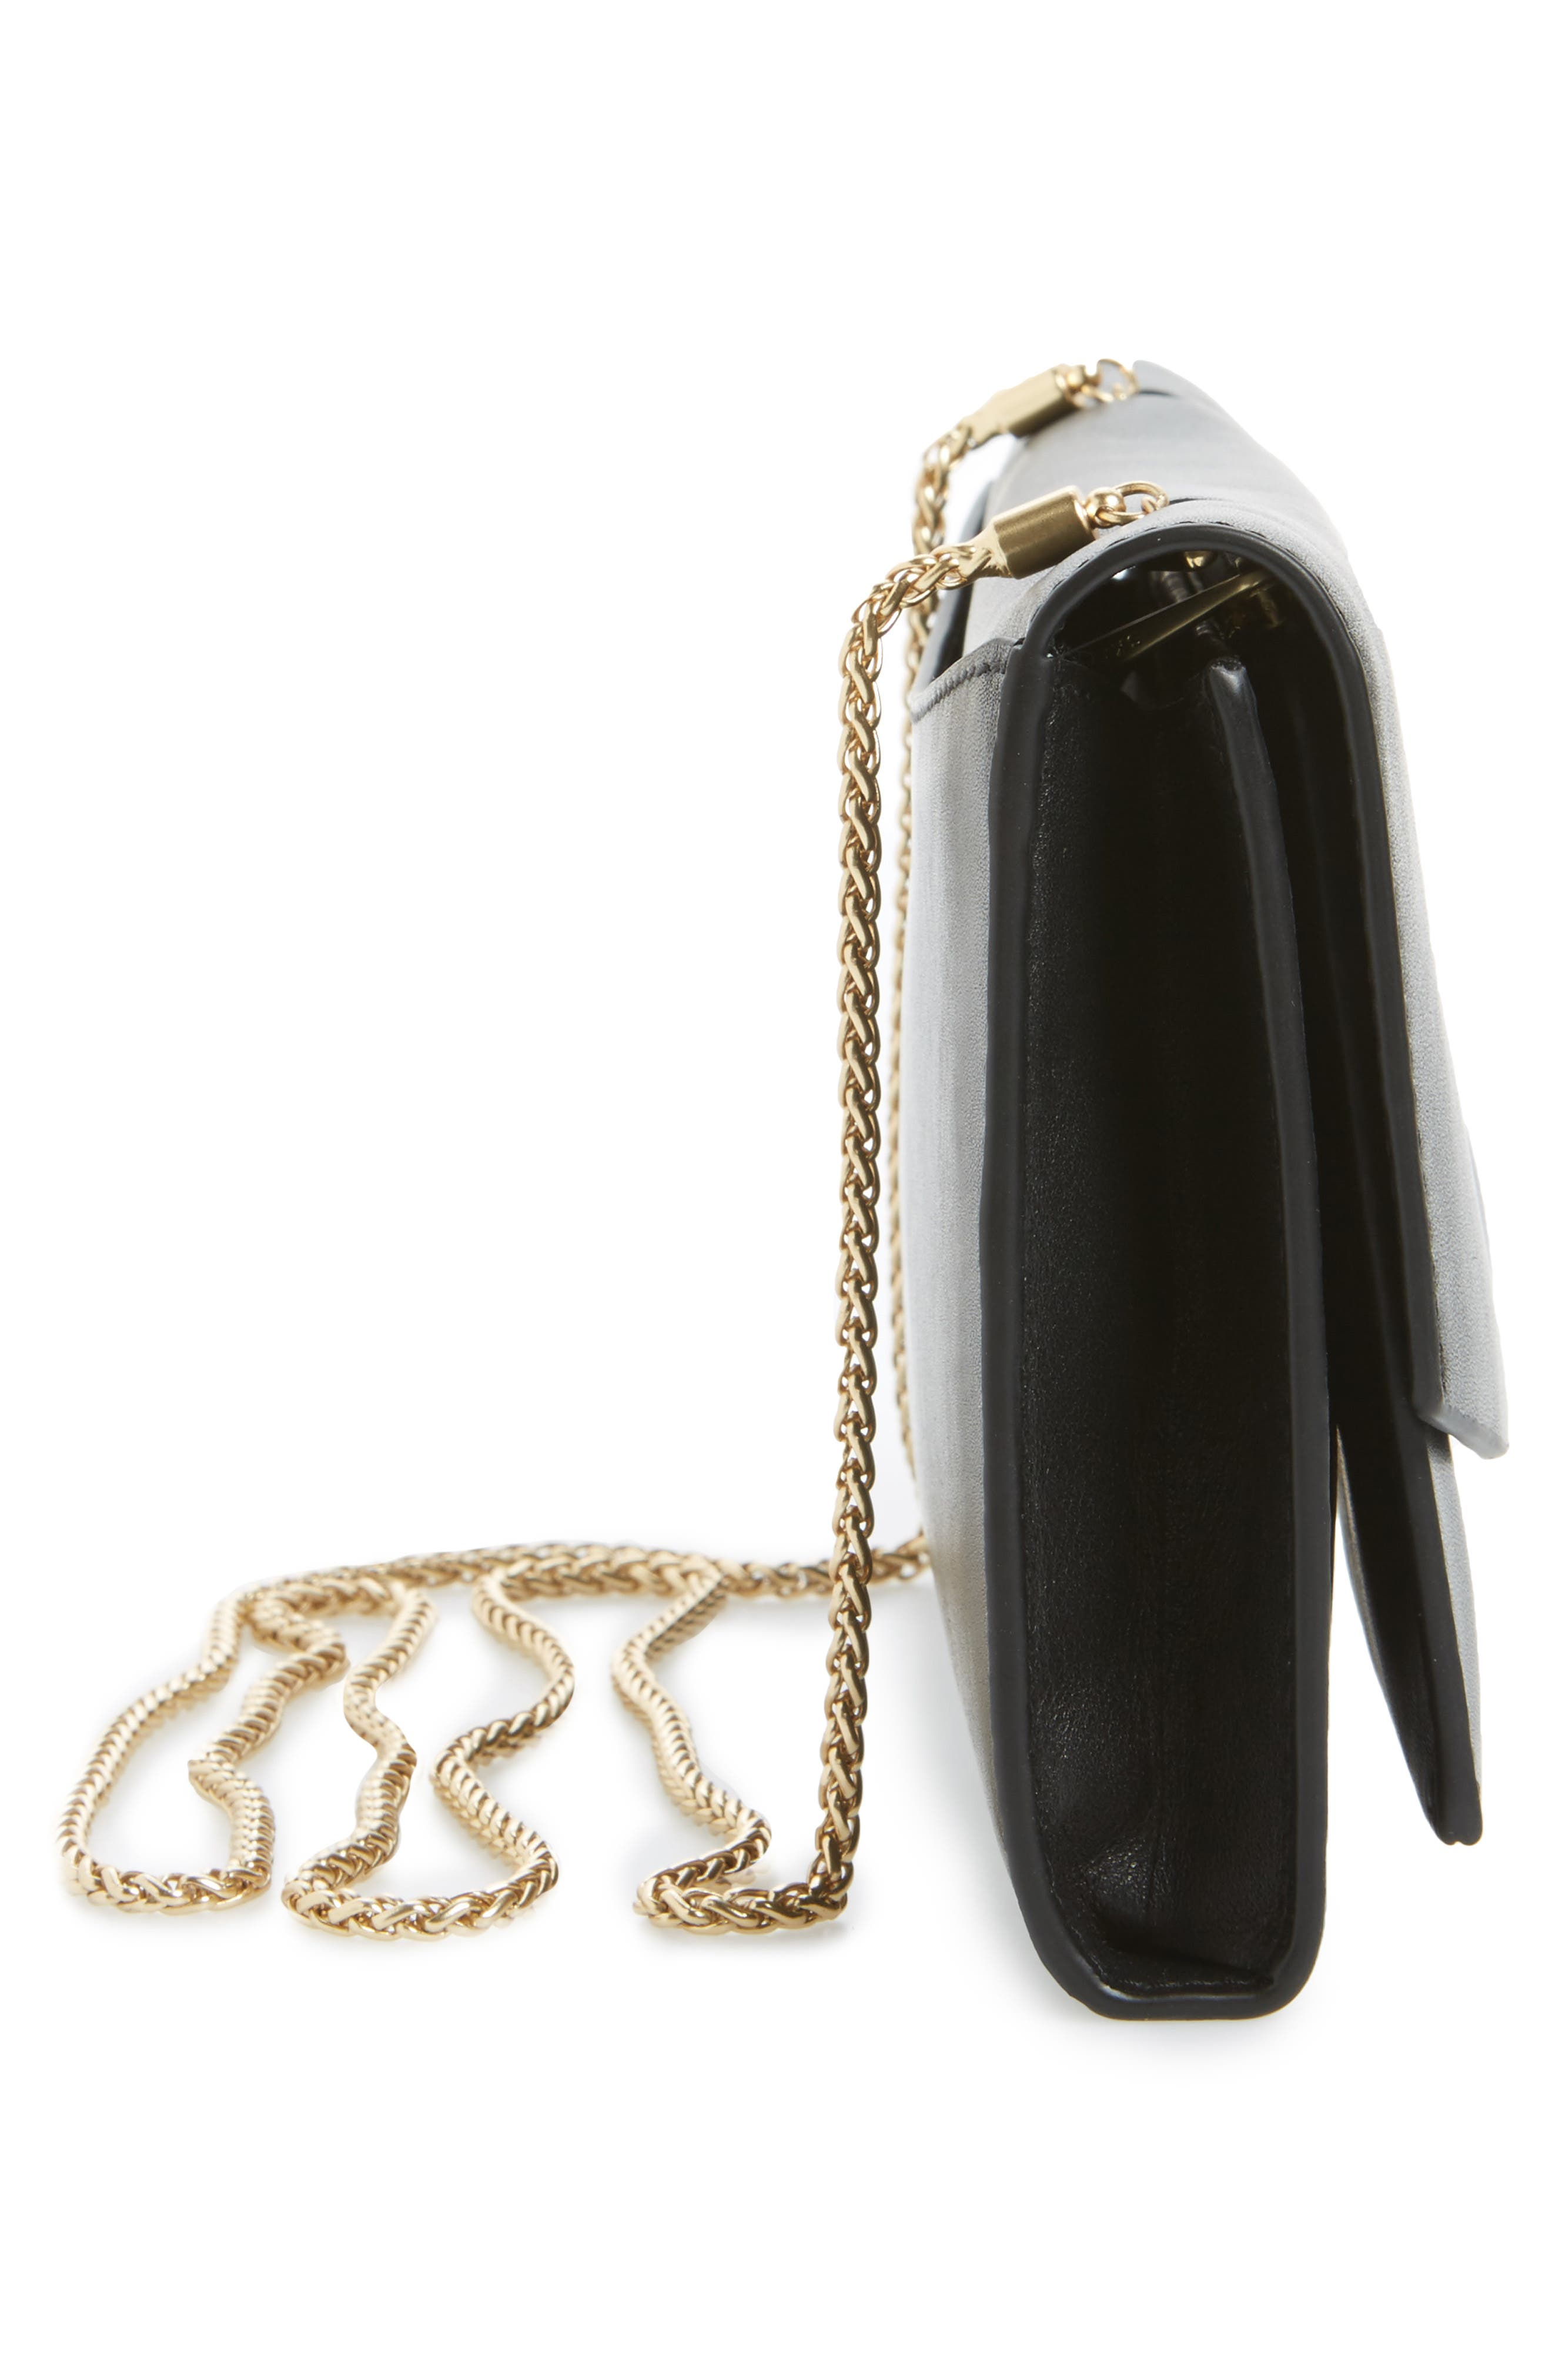 Eryka Leather Envelope Clutch with Detachable Chain,                             Alternate thumbnail 5, color,